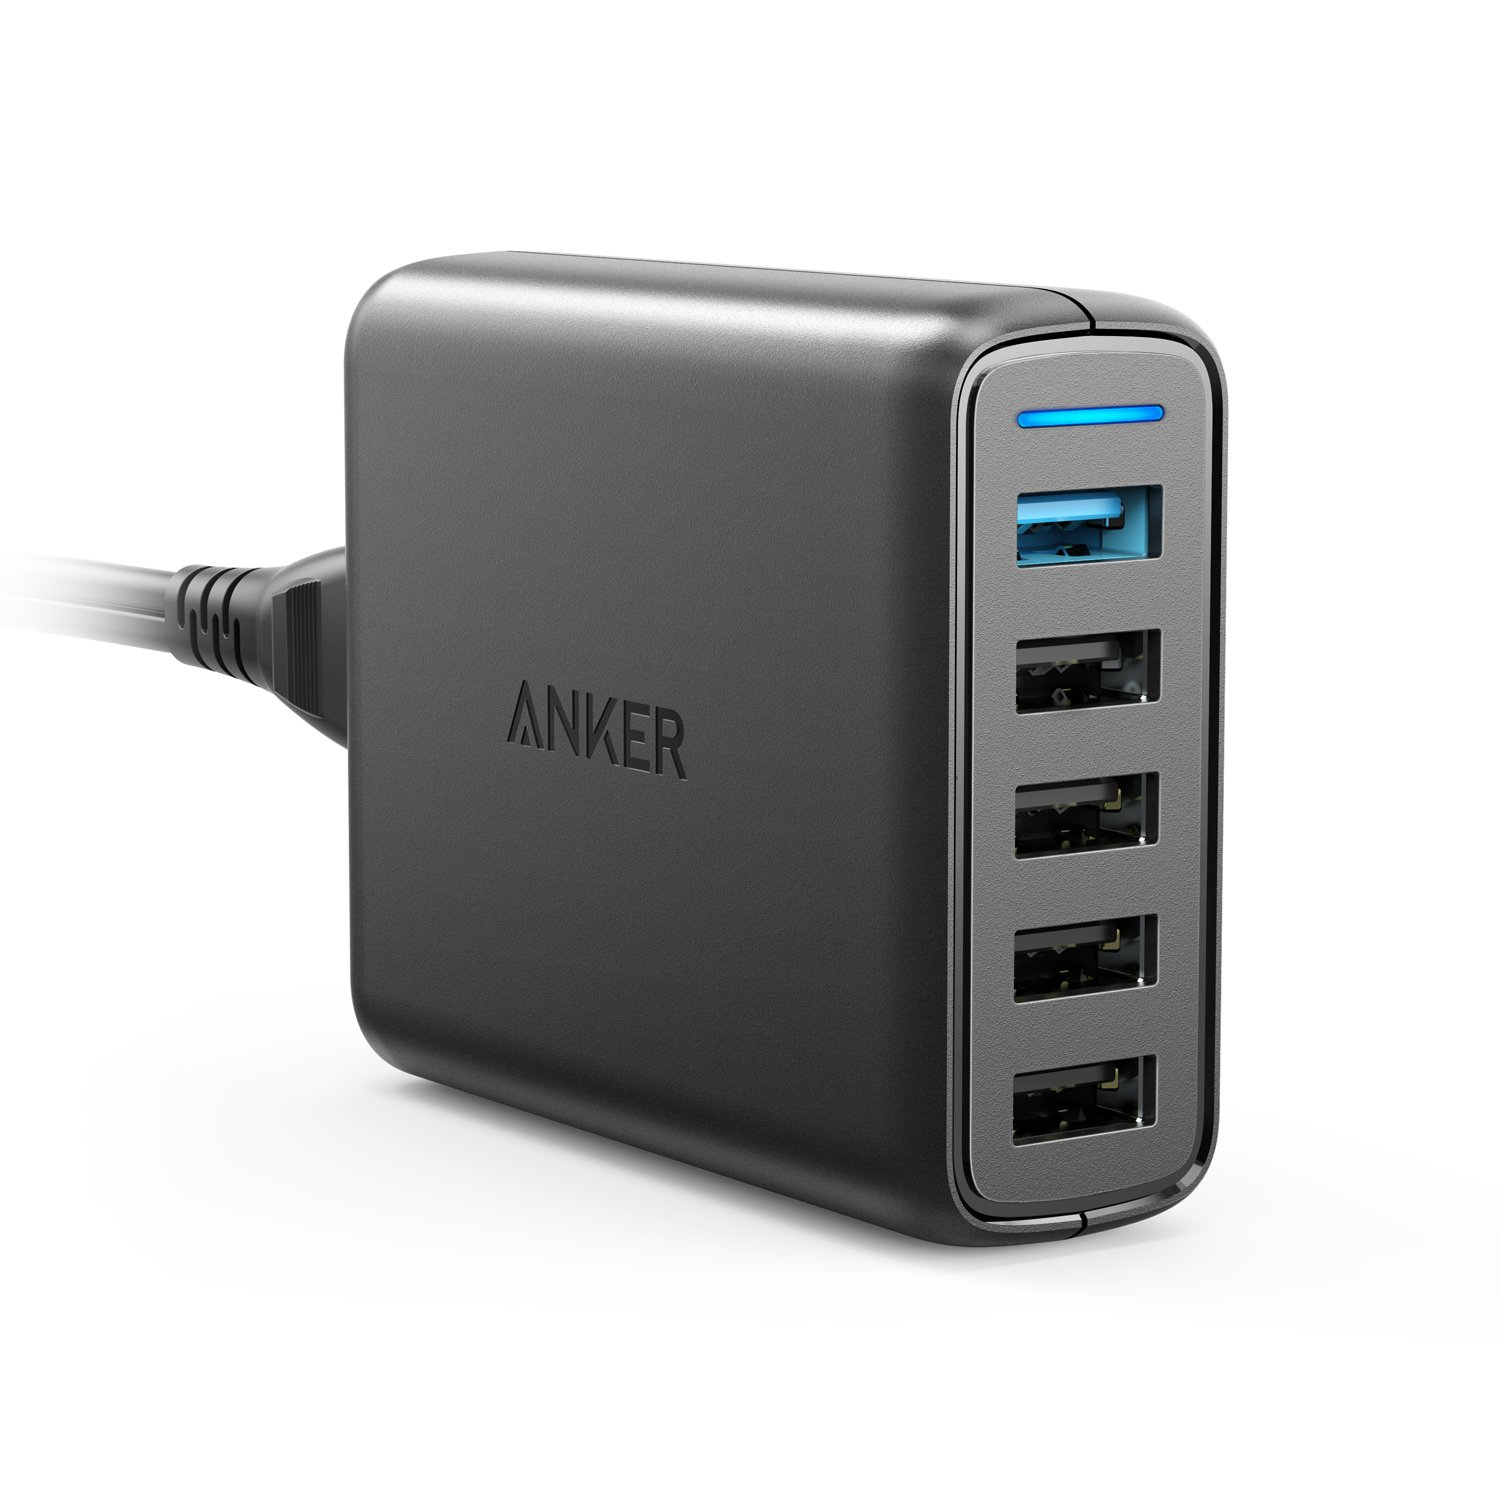 Anker Quick Charge 3.0 51.5W 5-Port USB Wall Charger, PowerPort Speed 5 for Galaxy S10/S9/S8/edge/Plus, Note 8/7, LG G4/G5, HTC One M9/A9, Nexus 9, with PowerIQ for iPhone Xs/Max/XR/X, iPad, and More by Anker